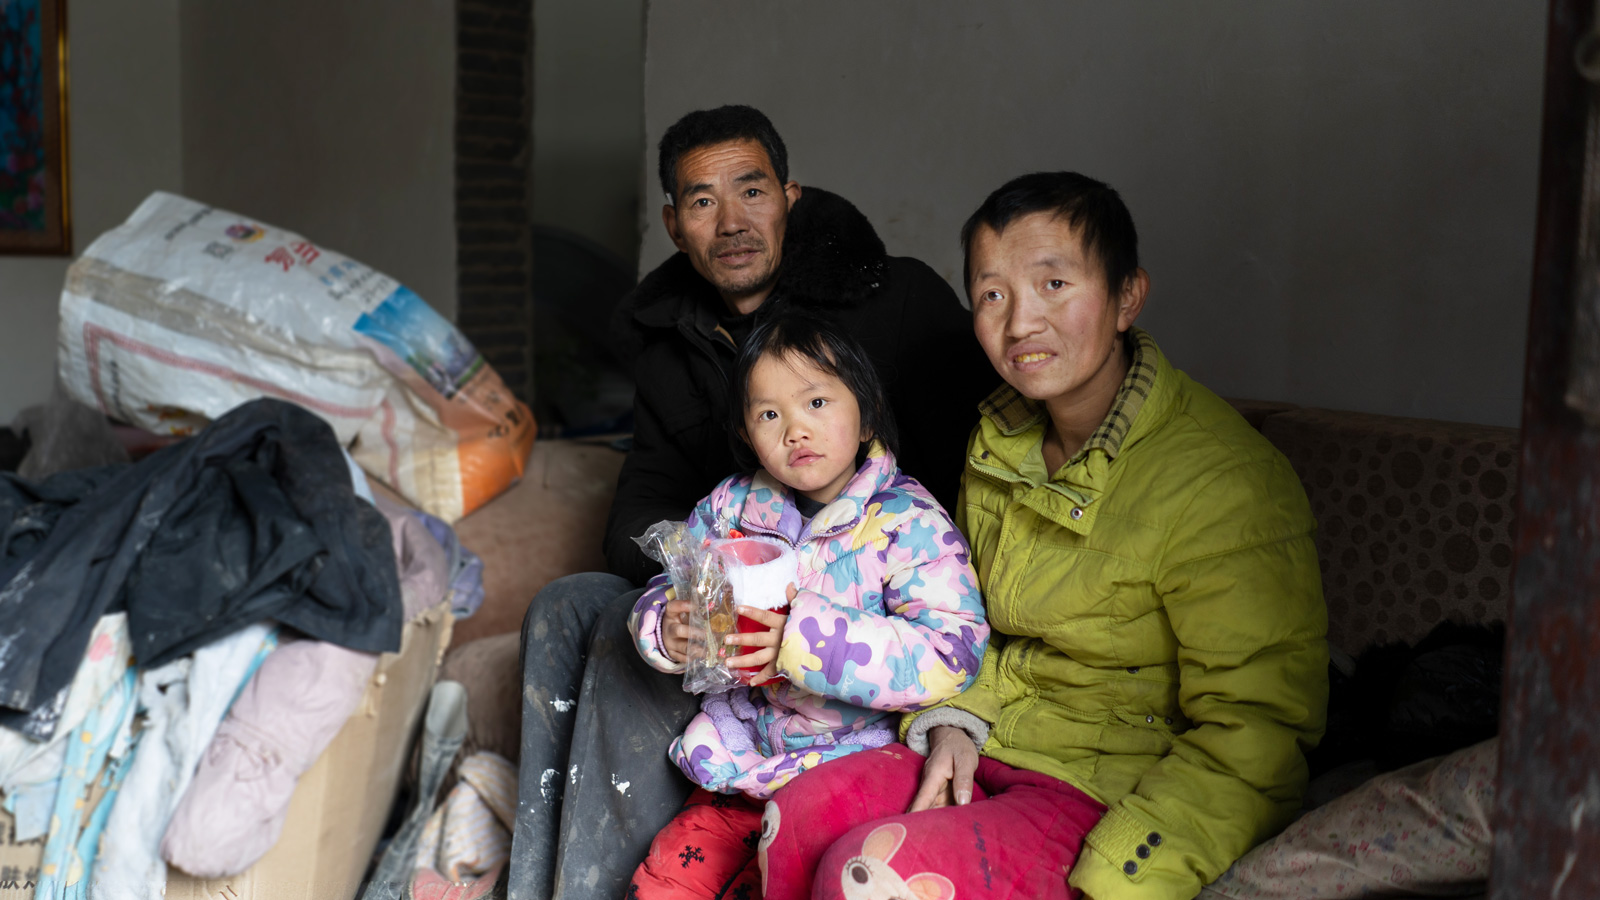 Zhenzhen and her mom and dad at home